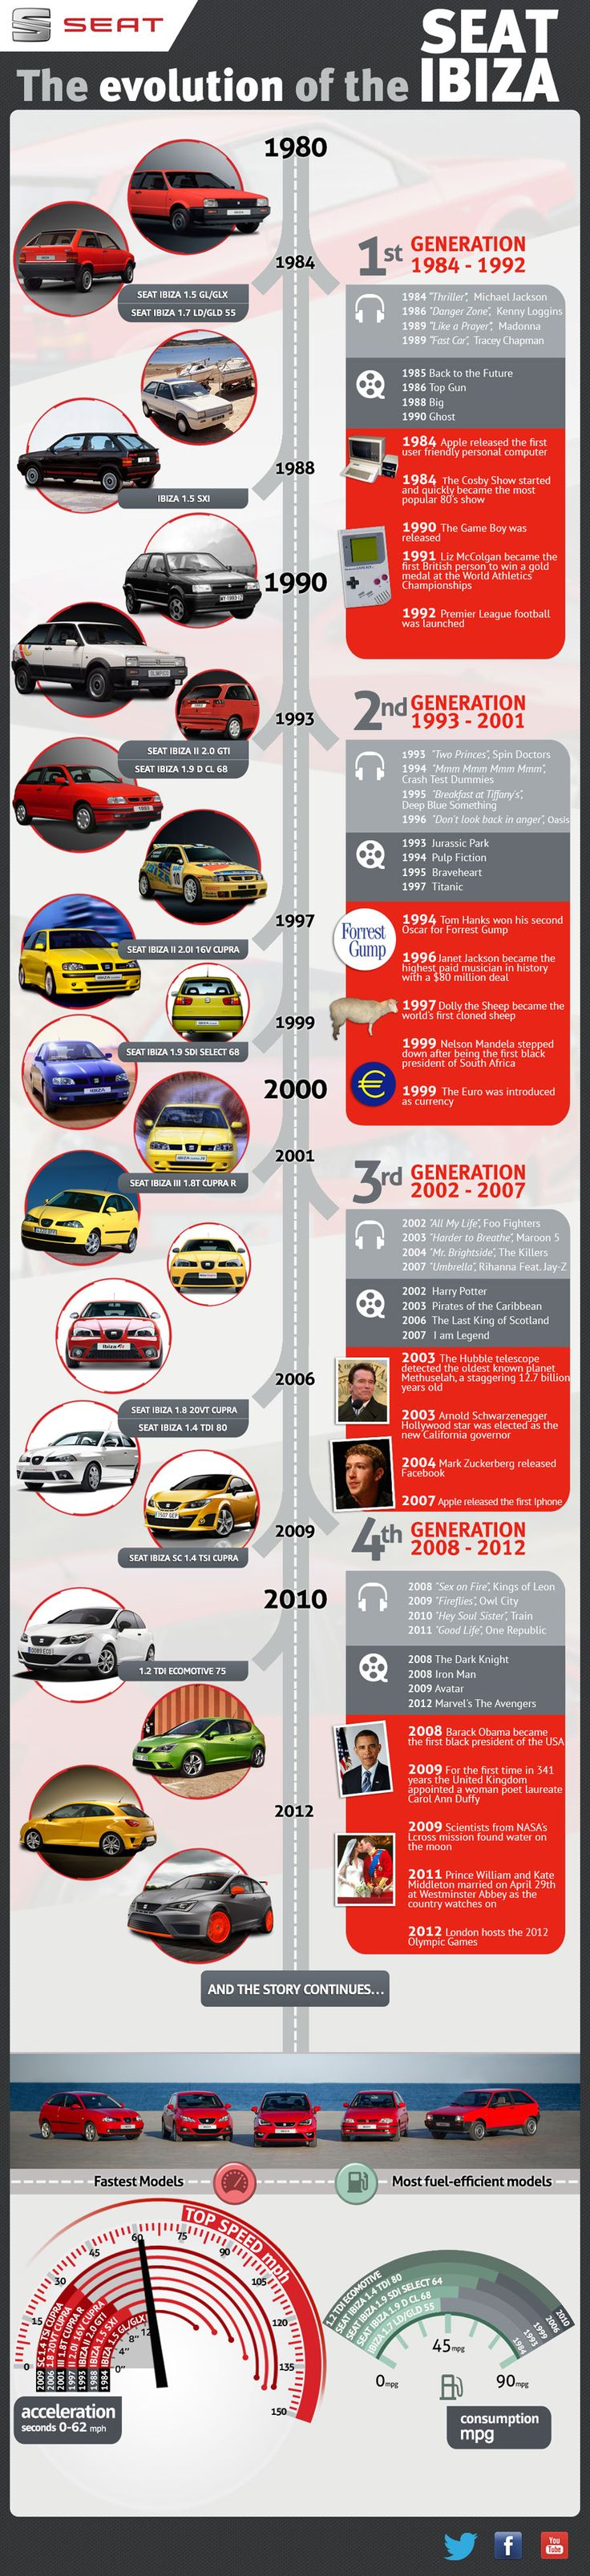 #INFOgraphic > #SeatIbiza History: Since its debut in 1984, the world and the SEAT Ibiza have evolved. See the Seat Ibiza history parallel to pop culture milestones such as Michael Jacksons Thriller, Top Gun and Foo Fighters. To see the interactive version with additional references please click the image or follow... > http://infographicsmania.com/seat-ibiza-history/